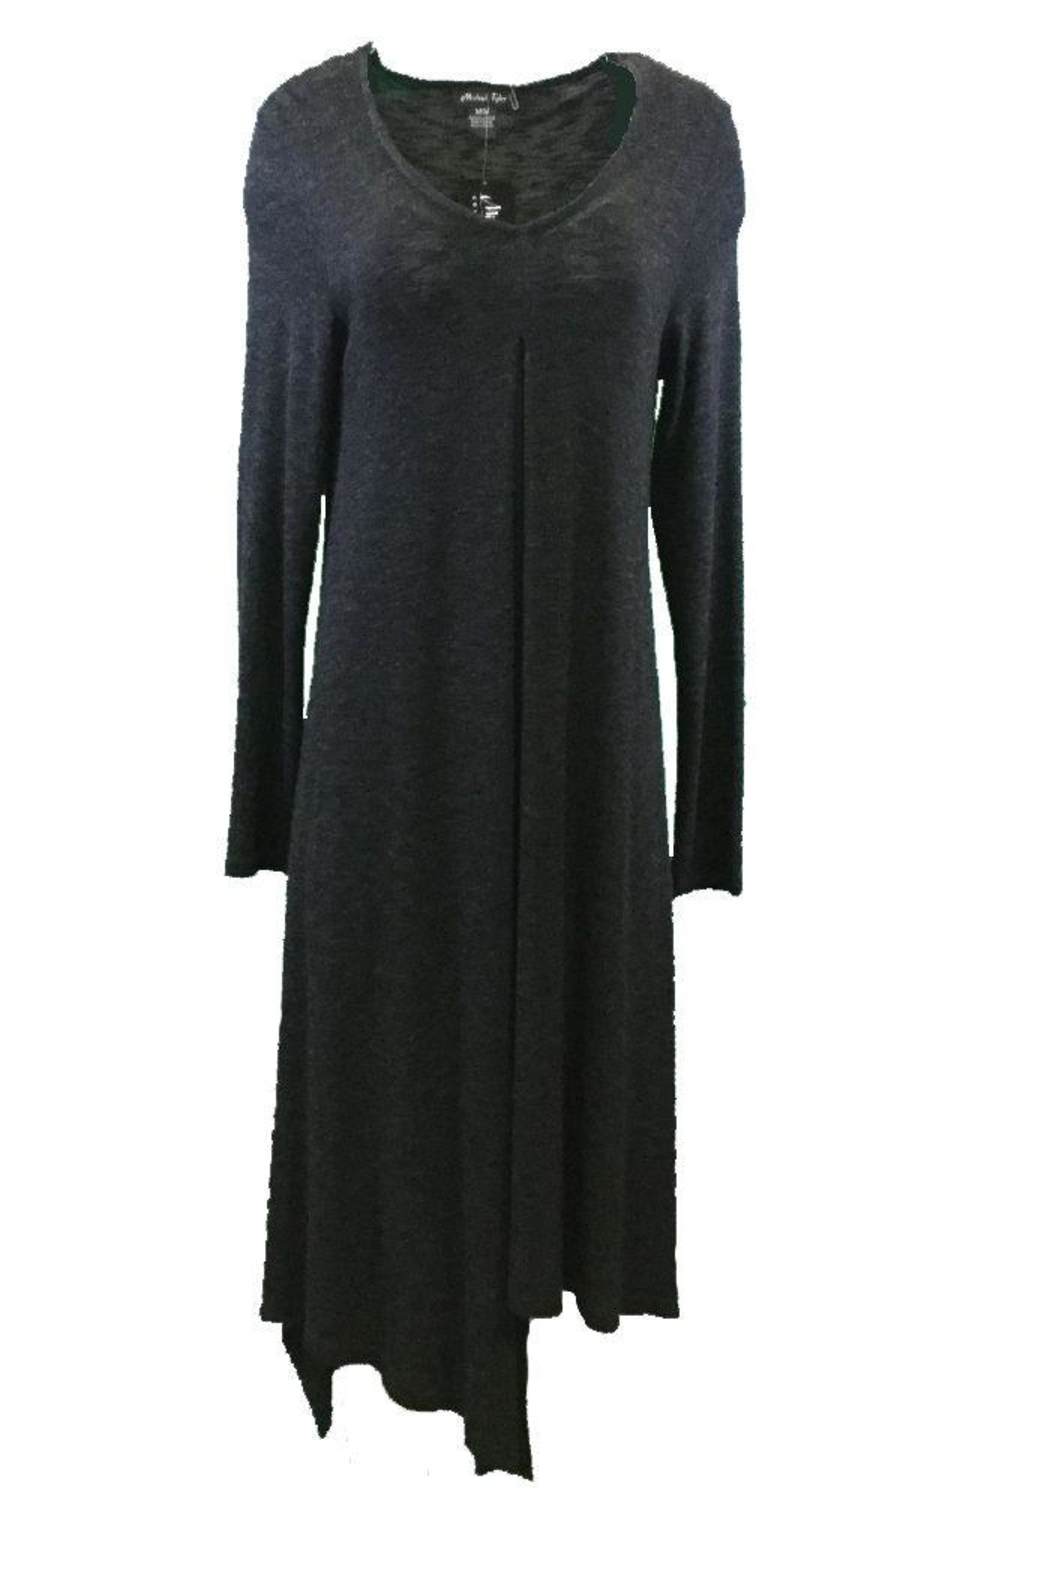 Michael Tyler Collections Black Charcoal Dress - Main Image